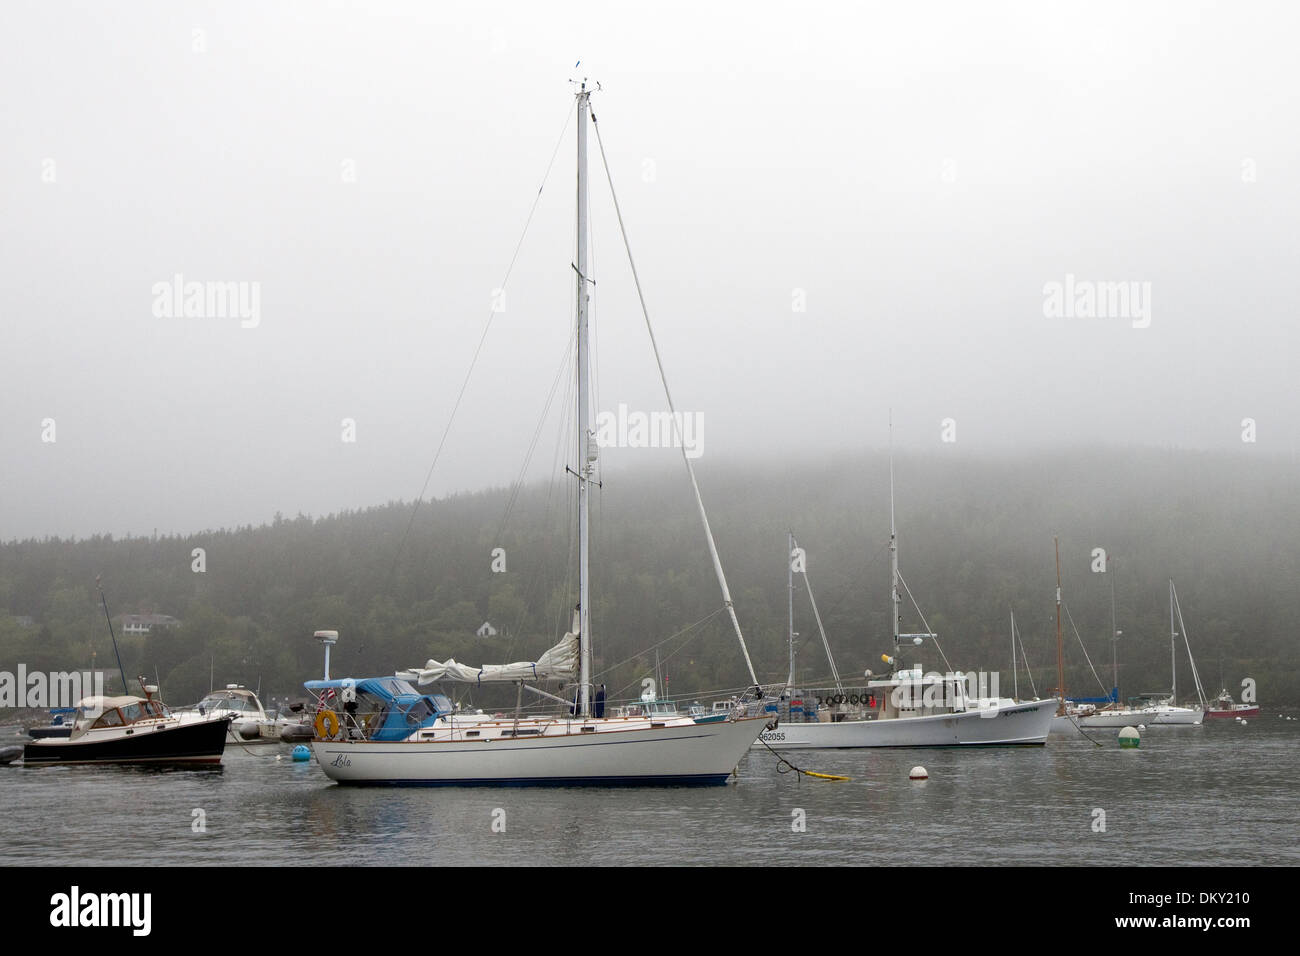 Sailboats moored in Northast Harbor, Maine - Stock Image